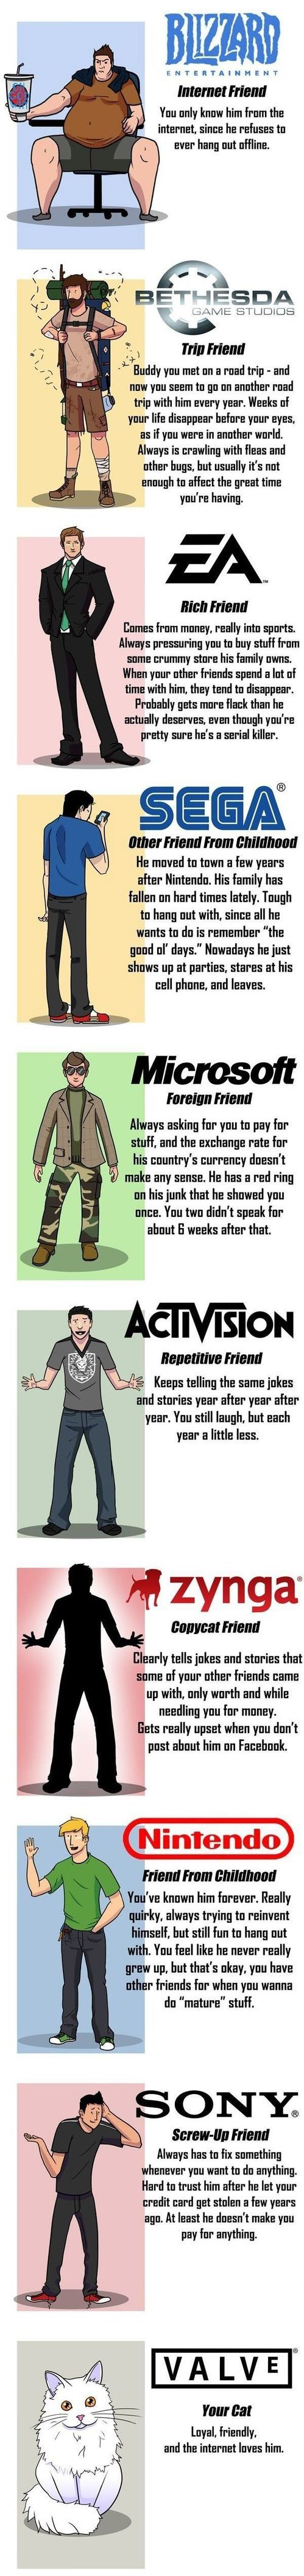 If gaming companies were your Friends. If gaming companies could be compared to a type friend, these would be their classifications. Check it out and see if you agree!